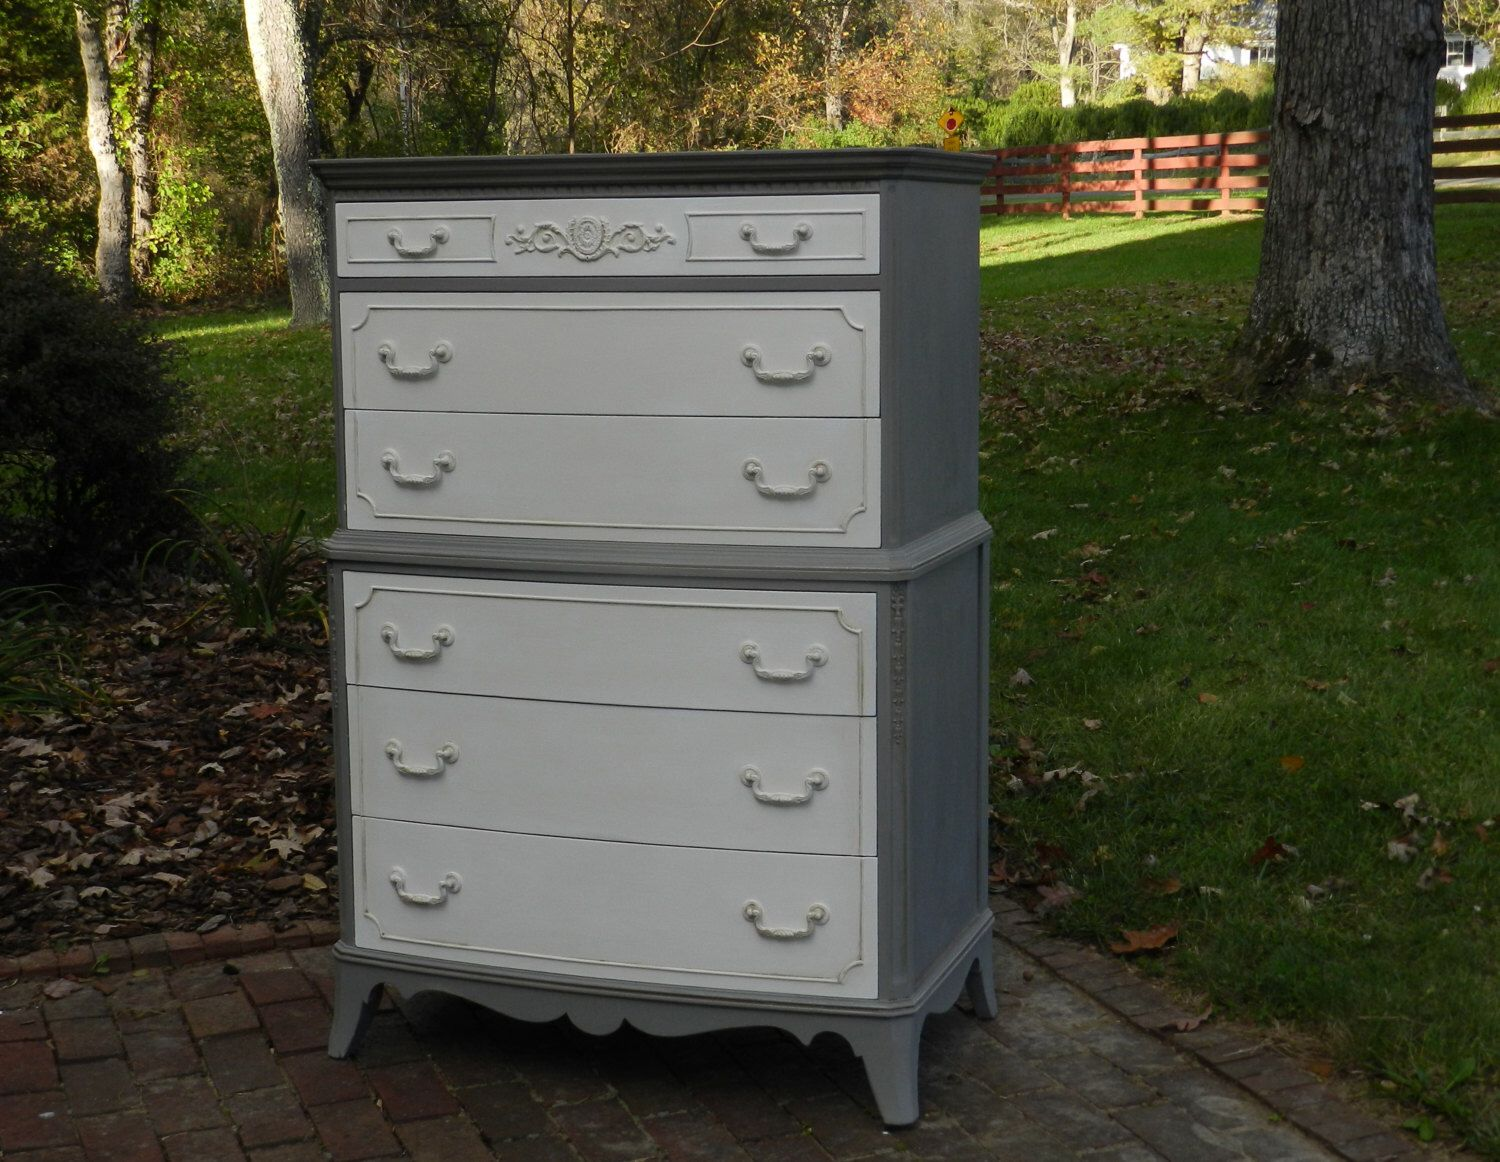 Vintage High Boy Hand Painted Dresser by HeritageHillShoppe on Etsy https://www.etsy.com/listing/258791461/vintage-high-boy-hand-painted-dresser